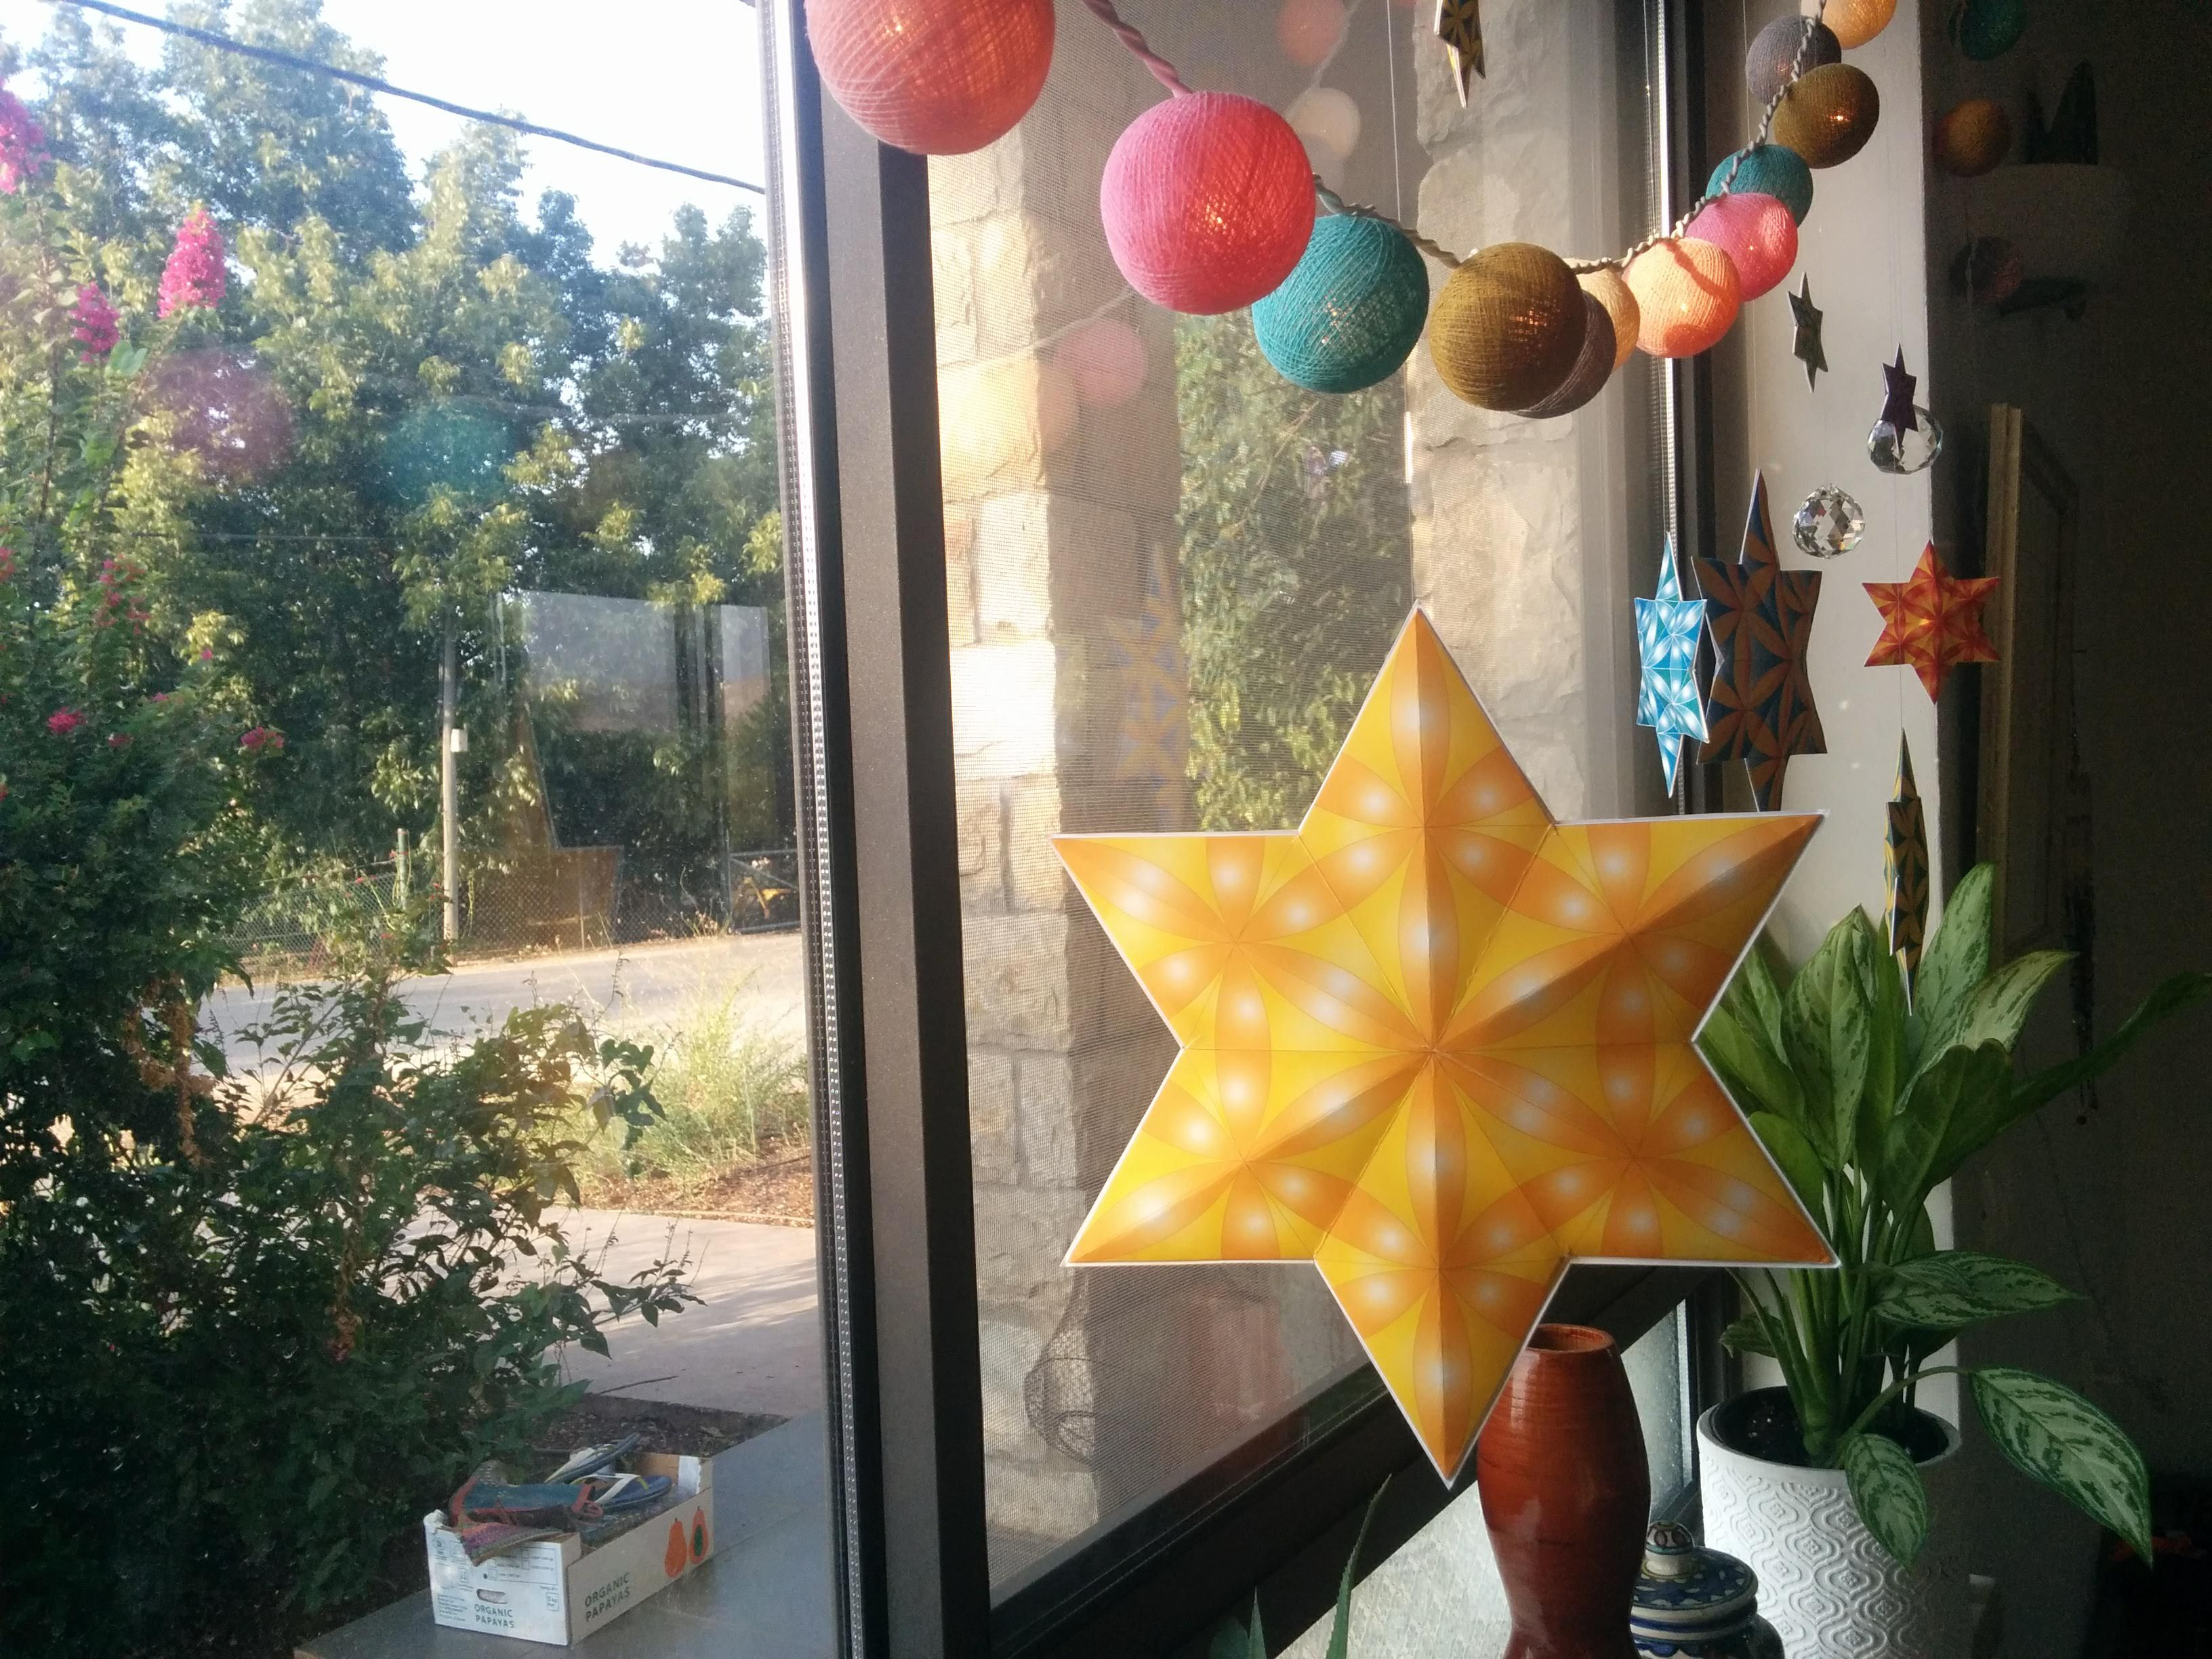 81 Best Sukkot crafts and activities images in 2019 ...  |Sukkot Crafts For Teens